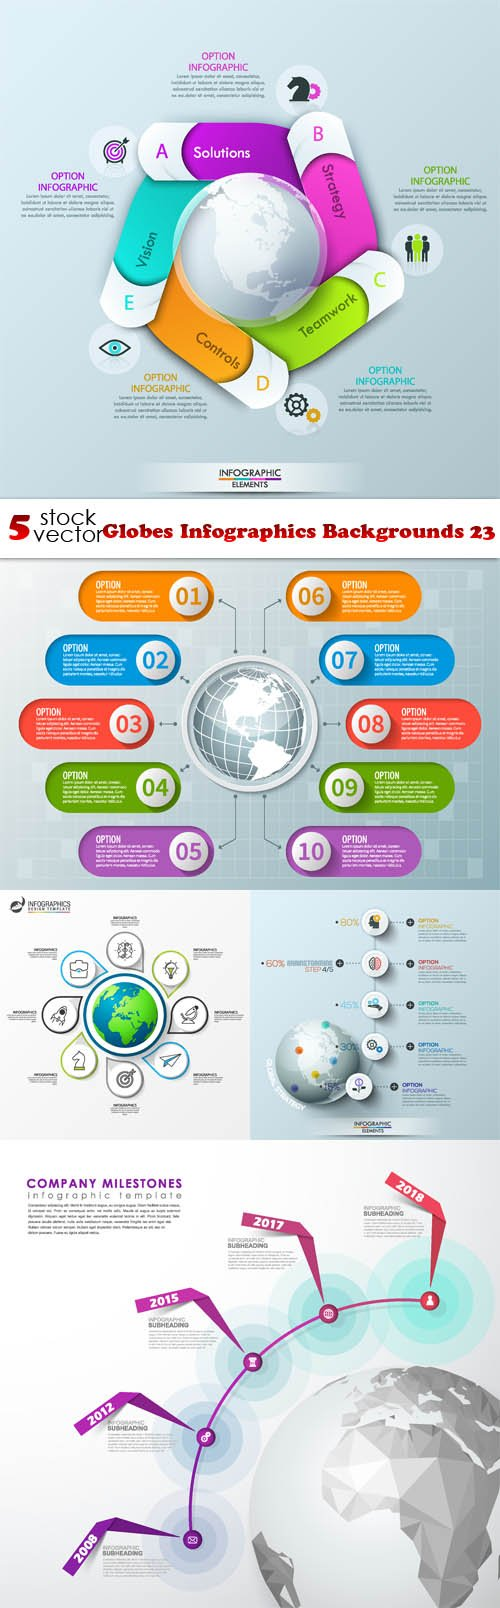 Vectors - Globes Infographics Backgrounds 23